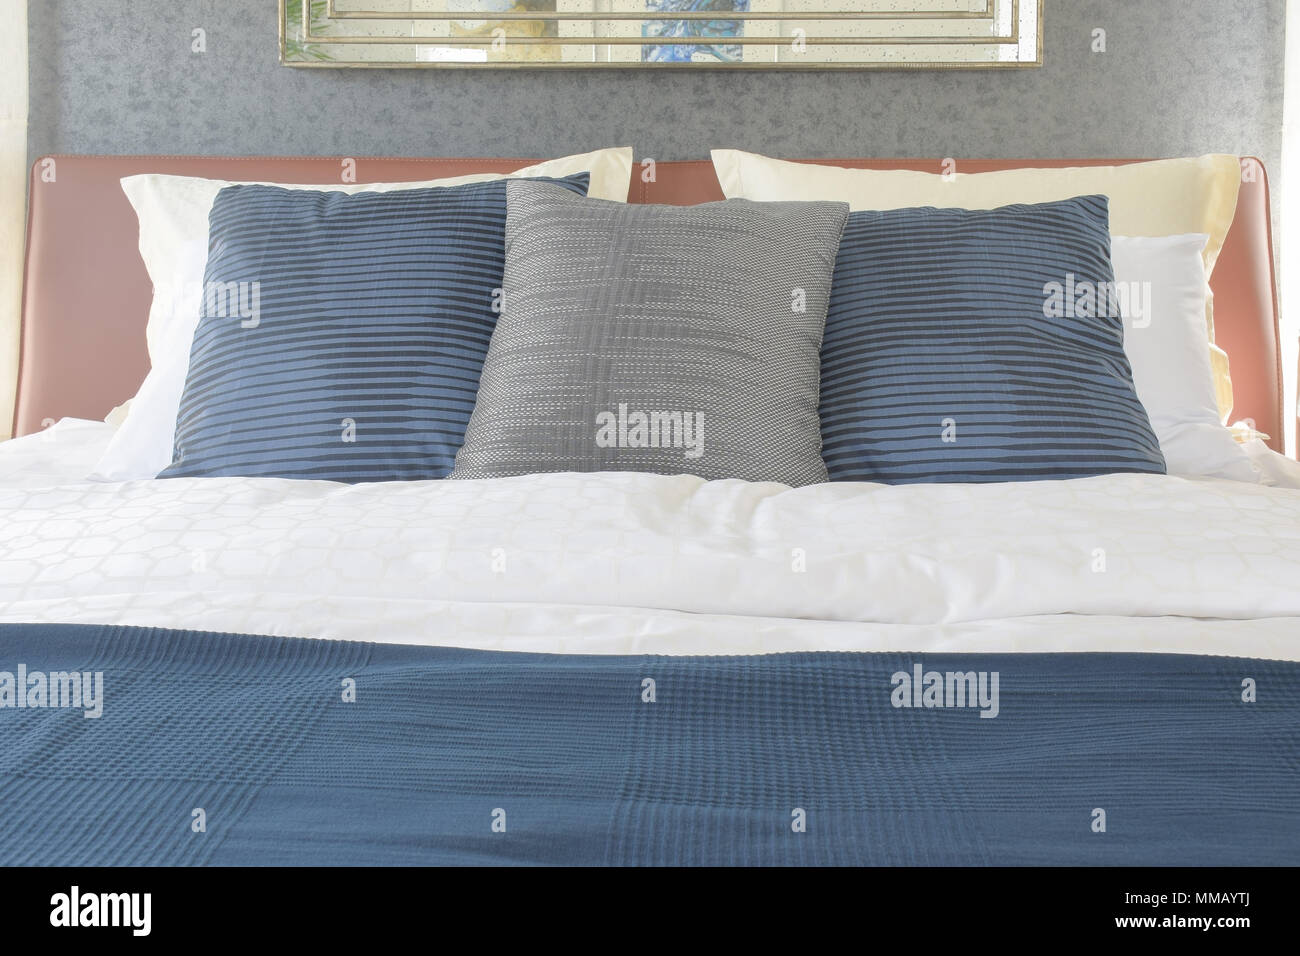 Dark Blue And Gray Pillow On Bed With Brown Leather Headboard Stock Photo Alamy